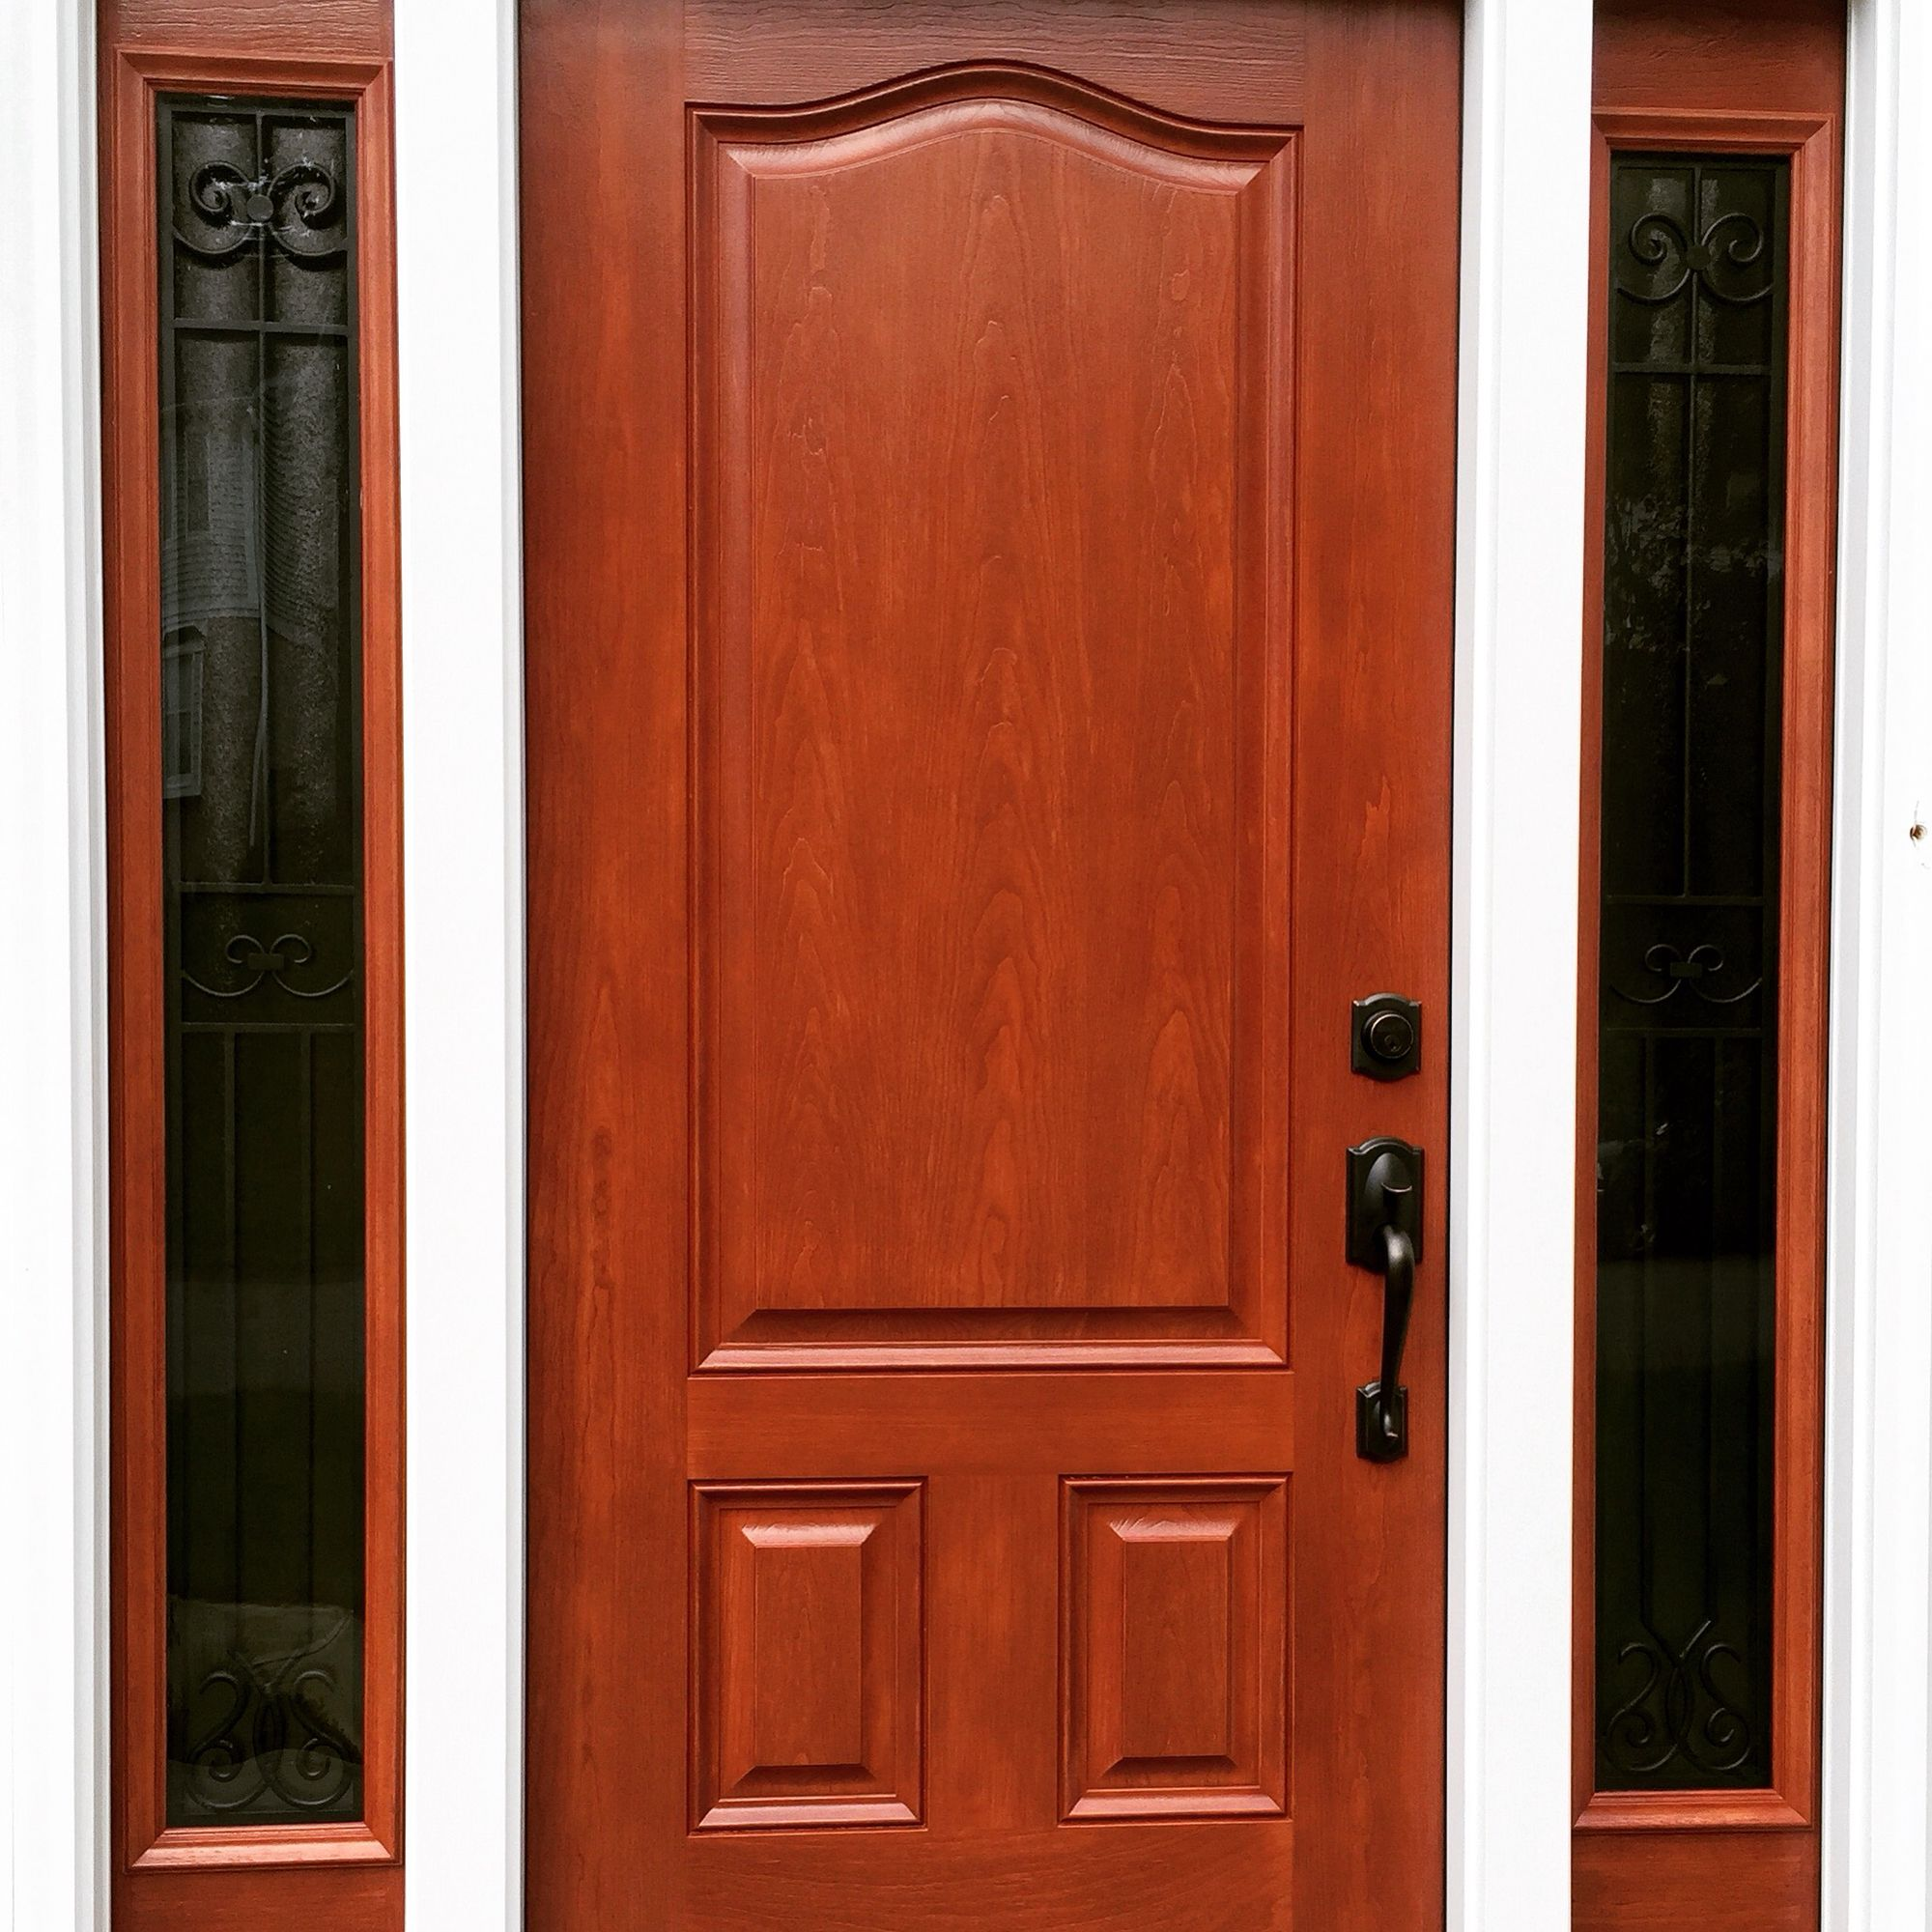 Provia Signet Fiberglass Entry Door Stain Color Toffee With Barcelona Glass Chinchilla Privacy